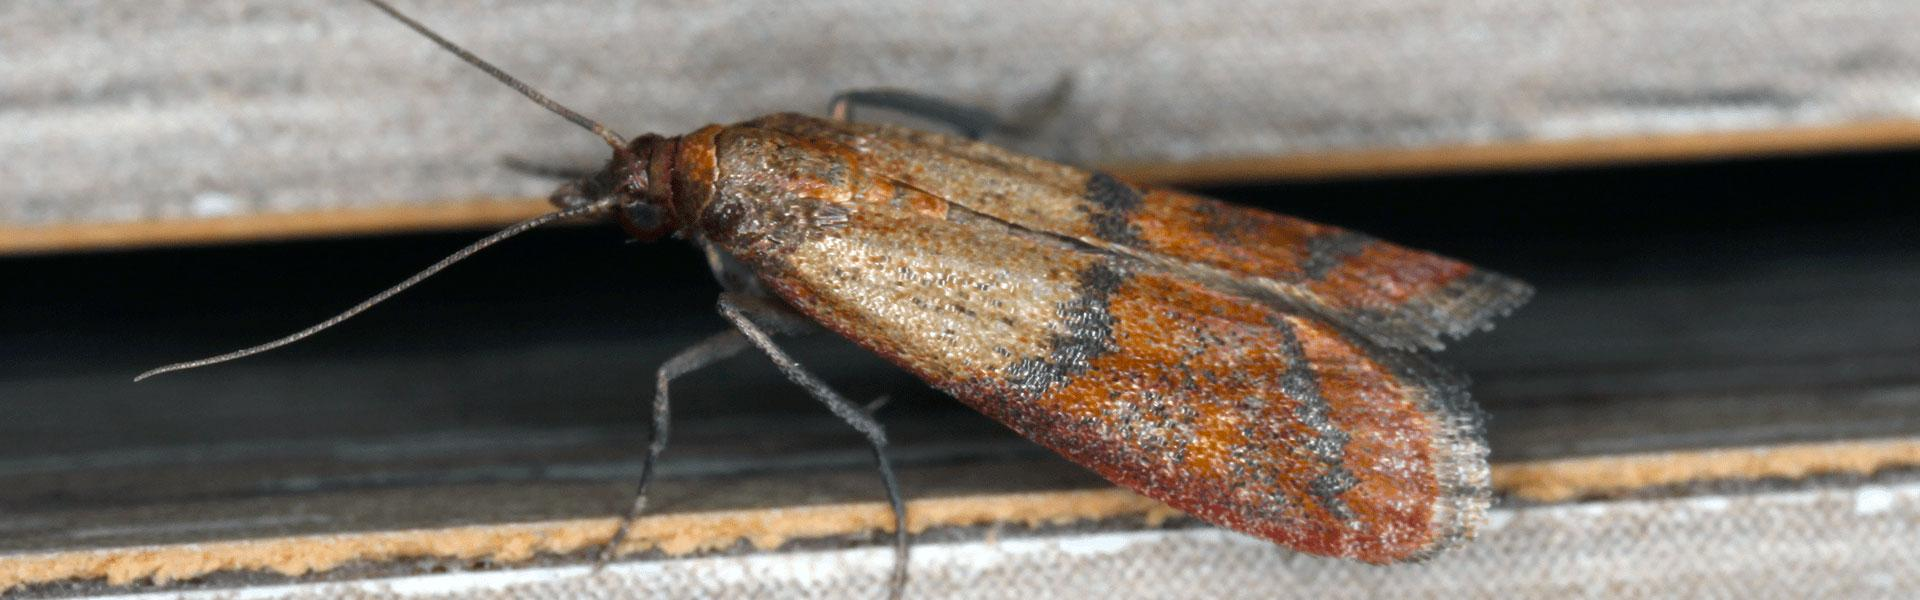 adult indian meal moth